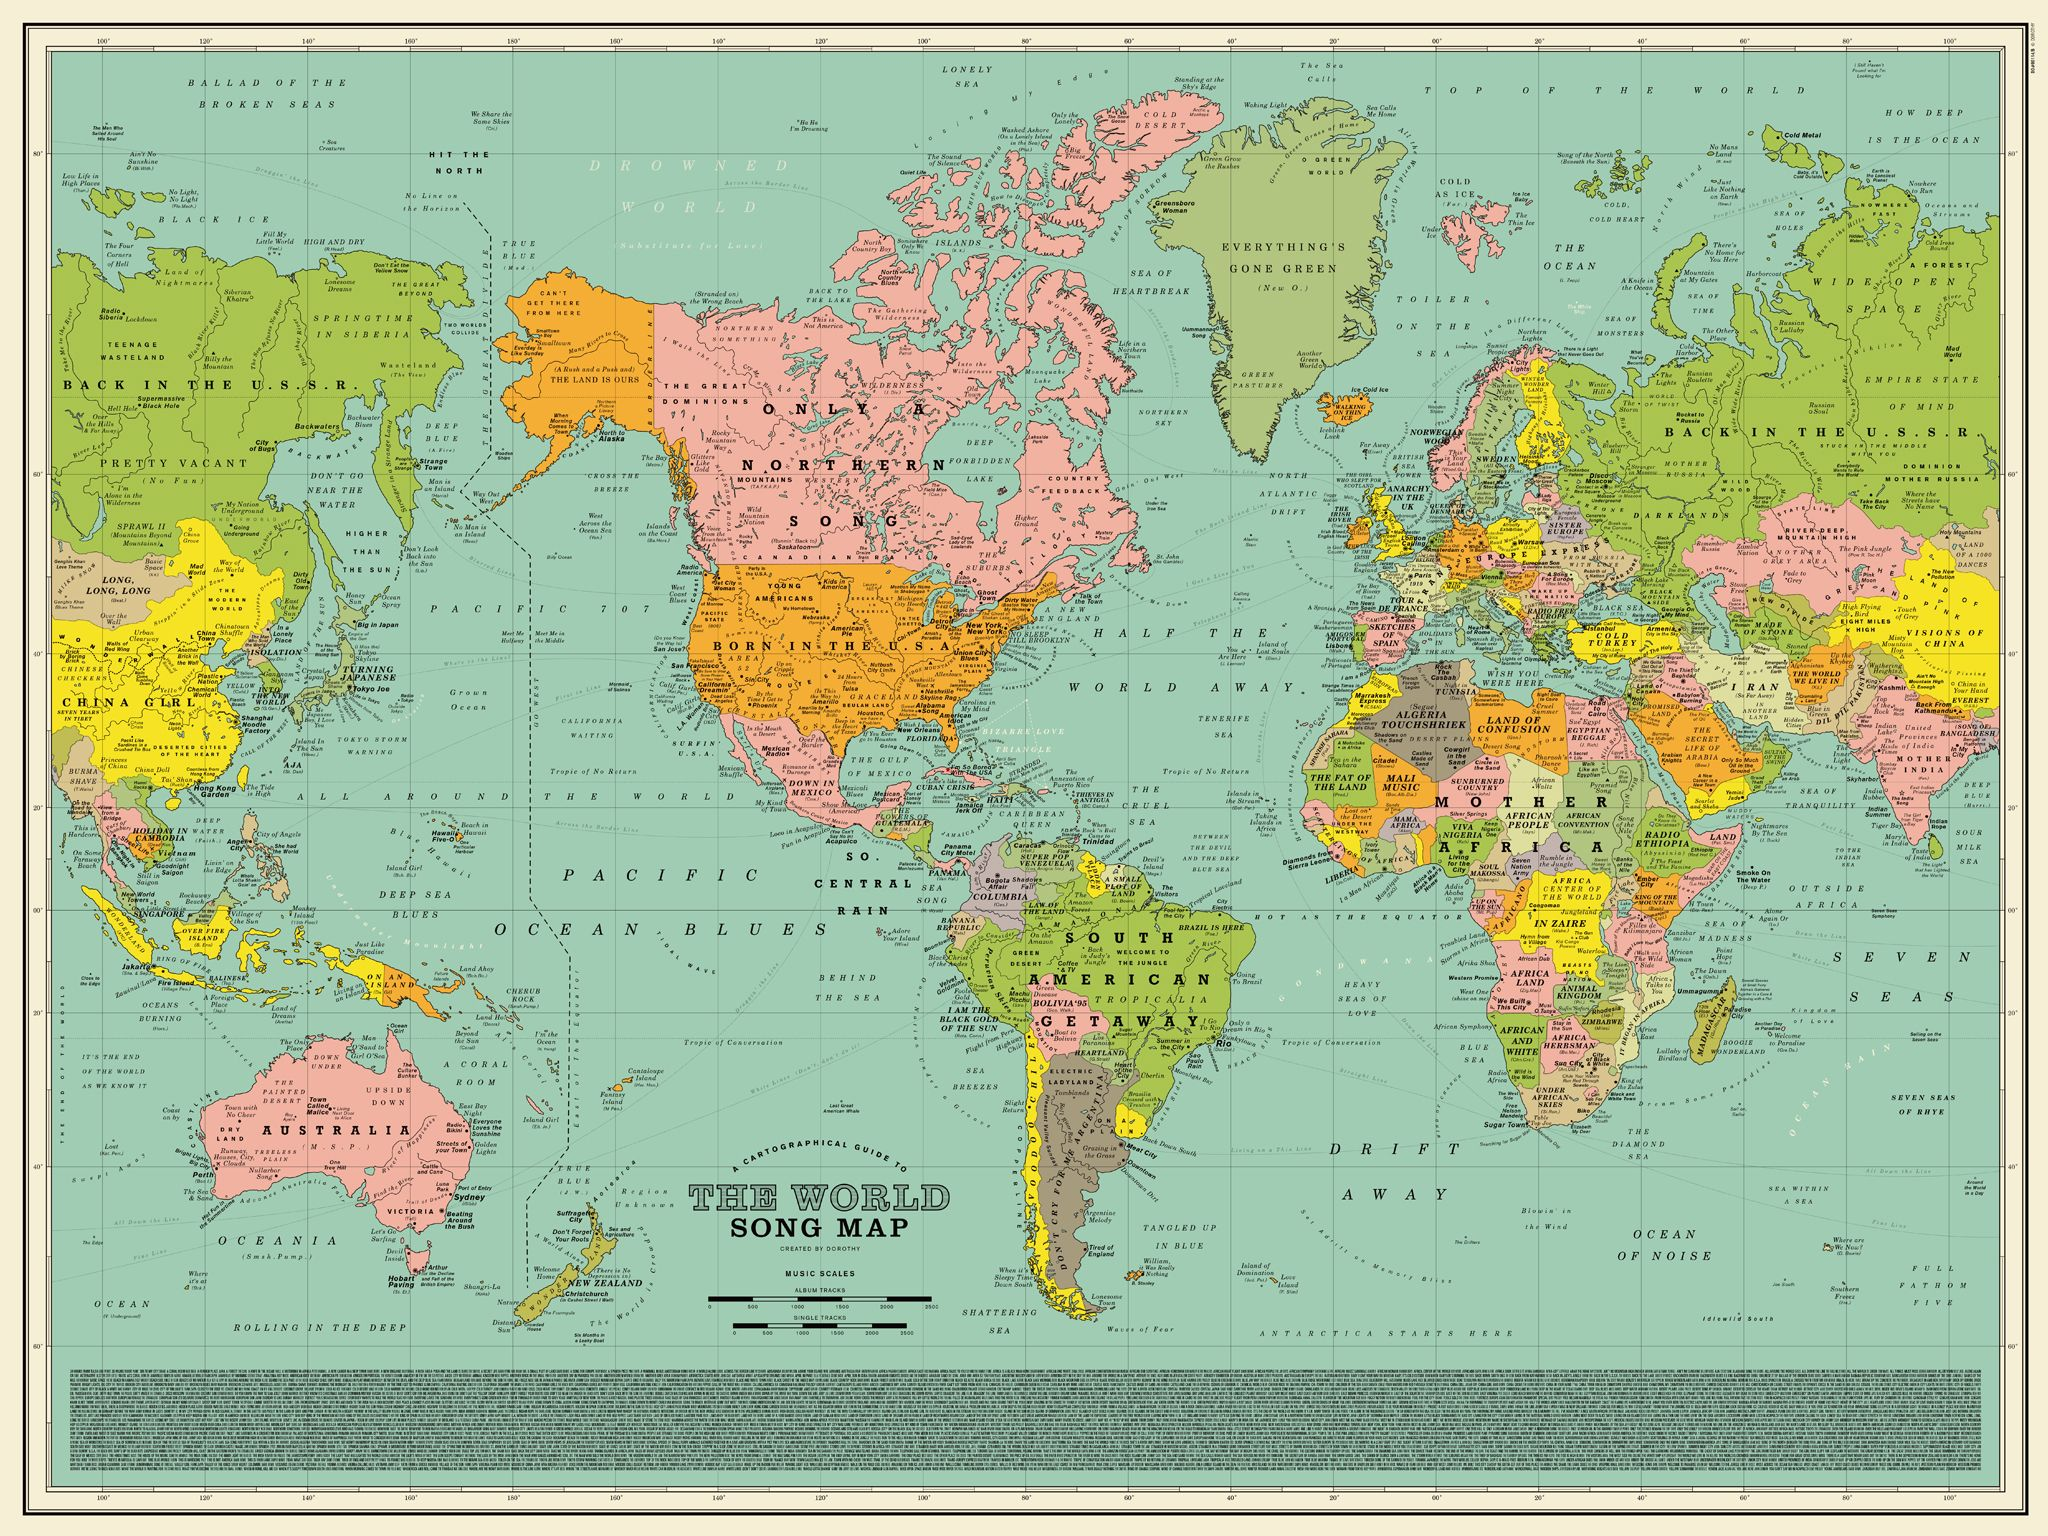 World Song Map, A Detailed Poster That Imagines the World Map Made ...